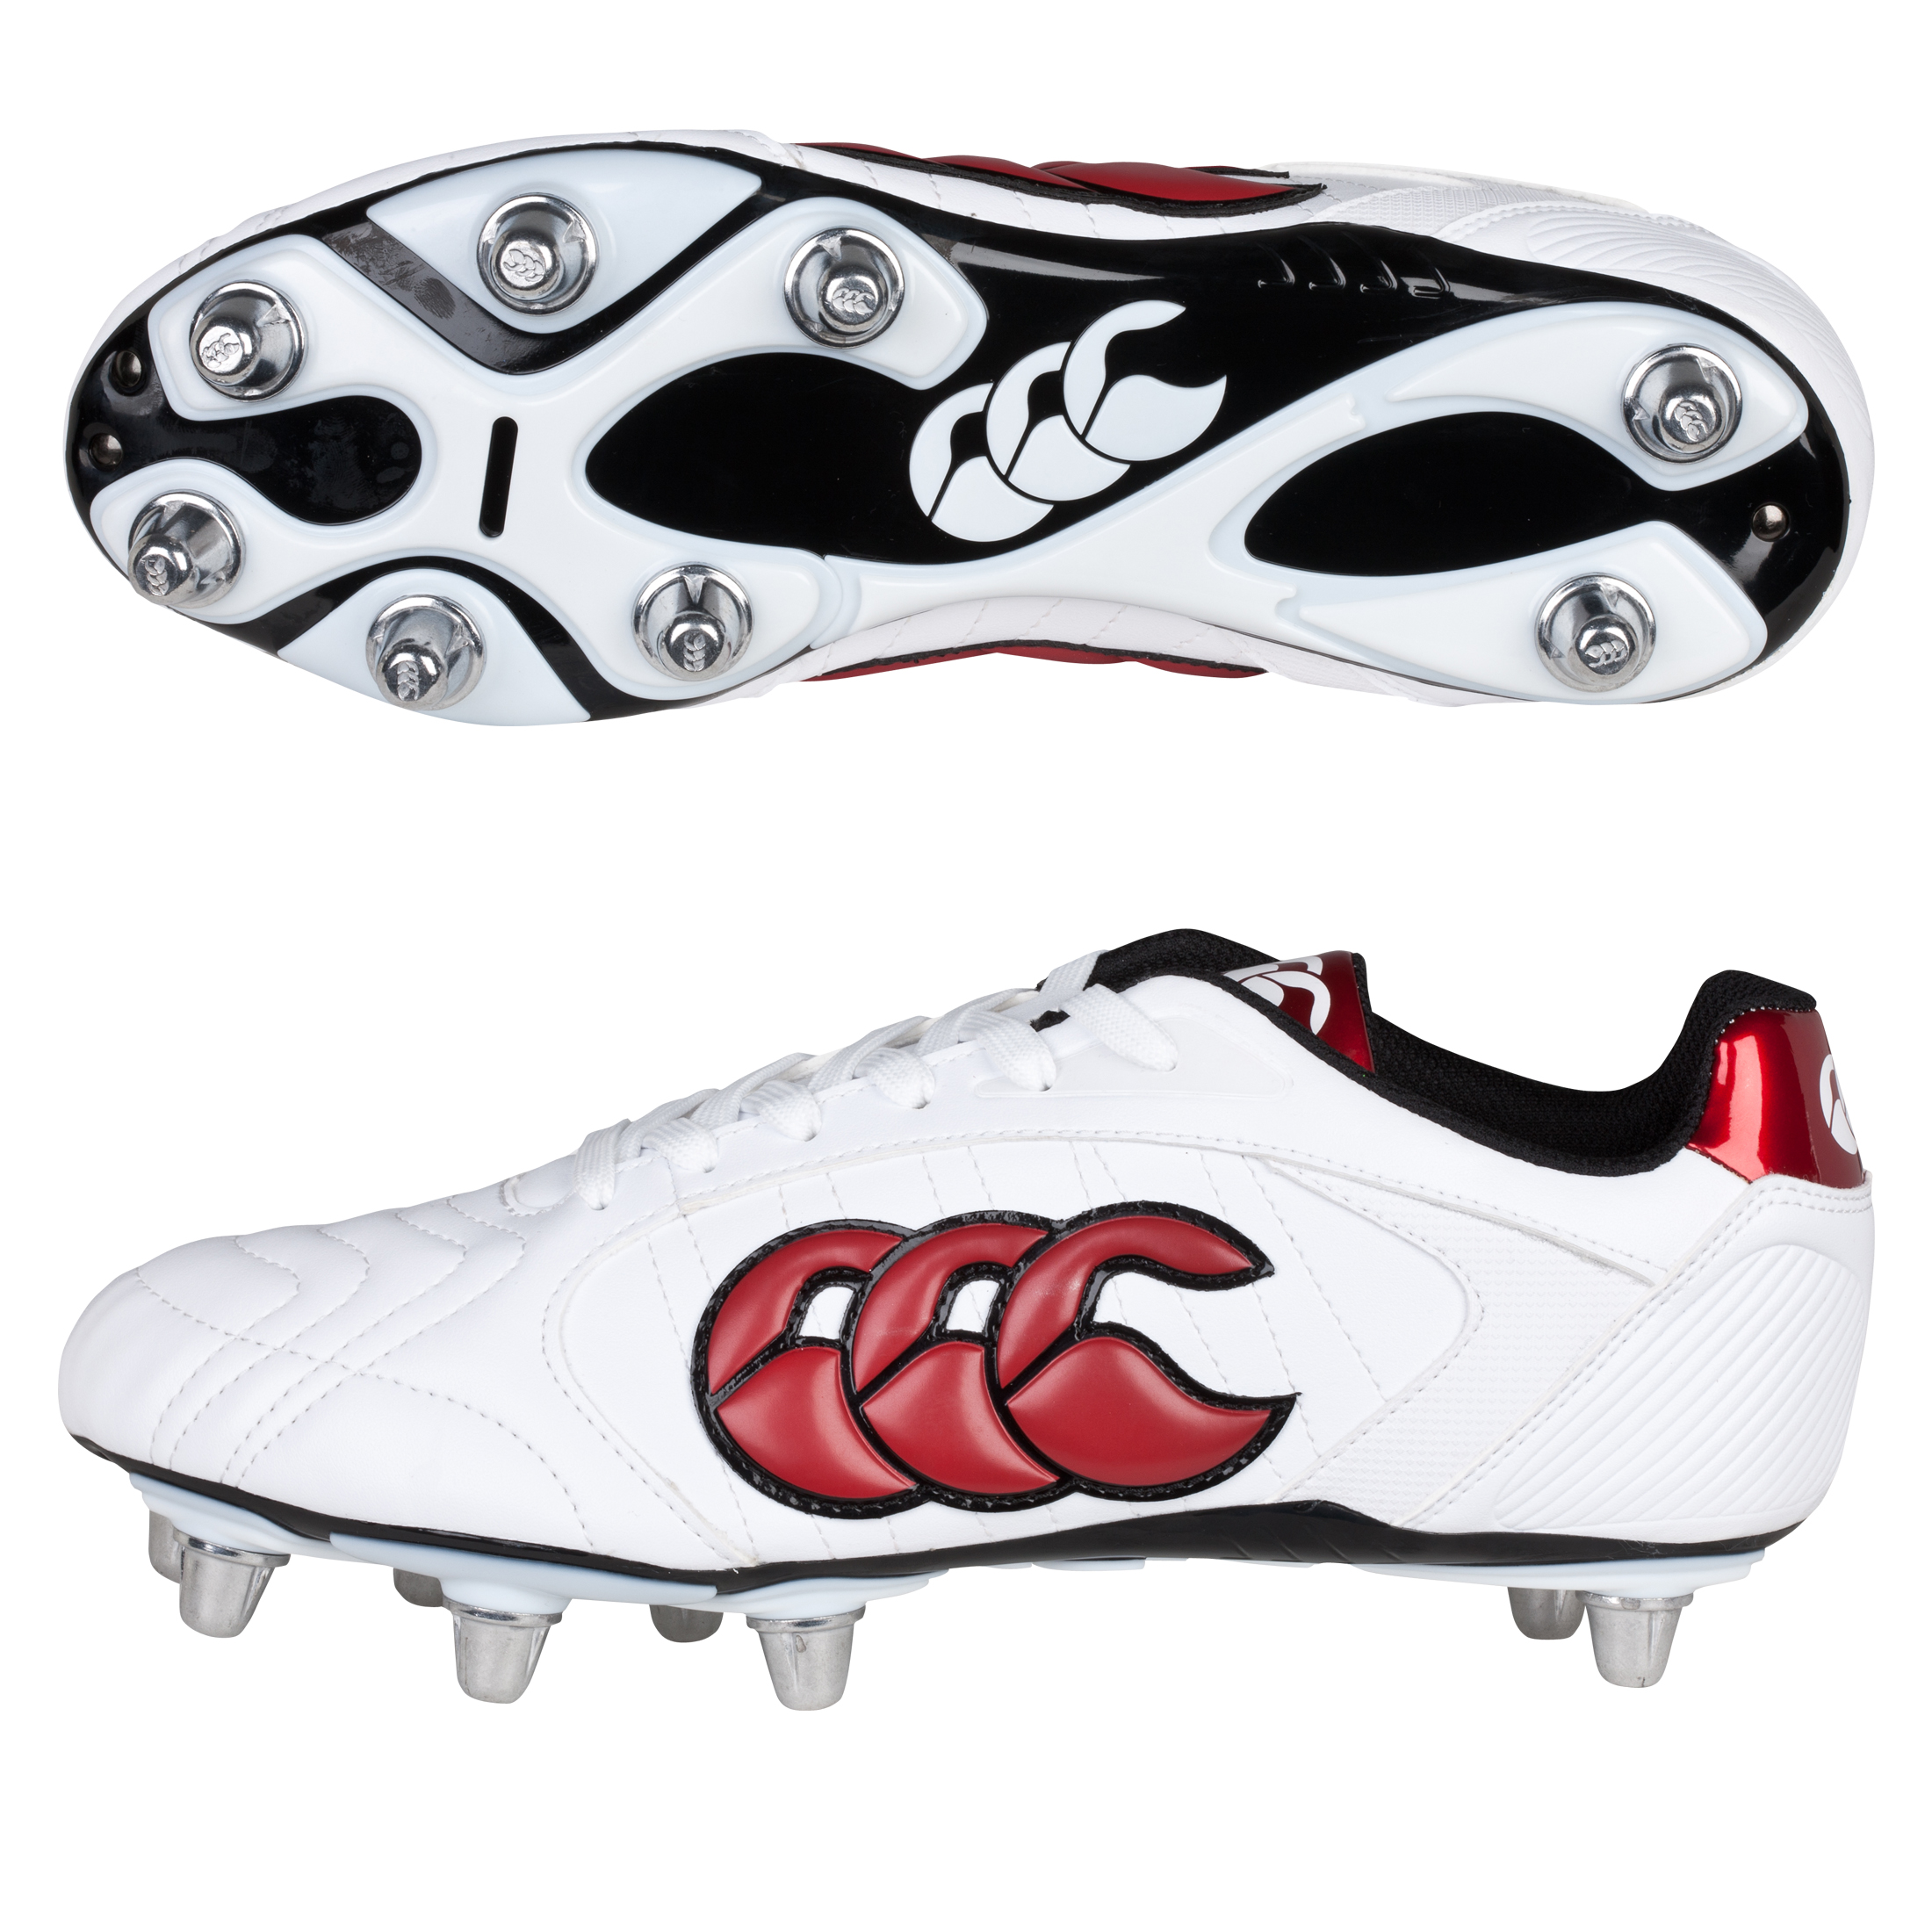 Canterbury Phoenix Lli Club 8 Stud Rugby Boot - White/Red/Black